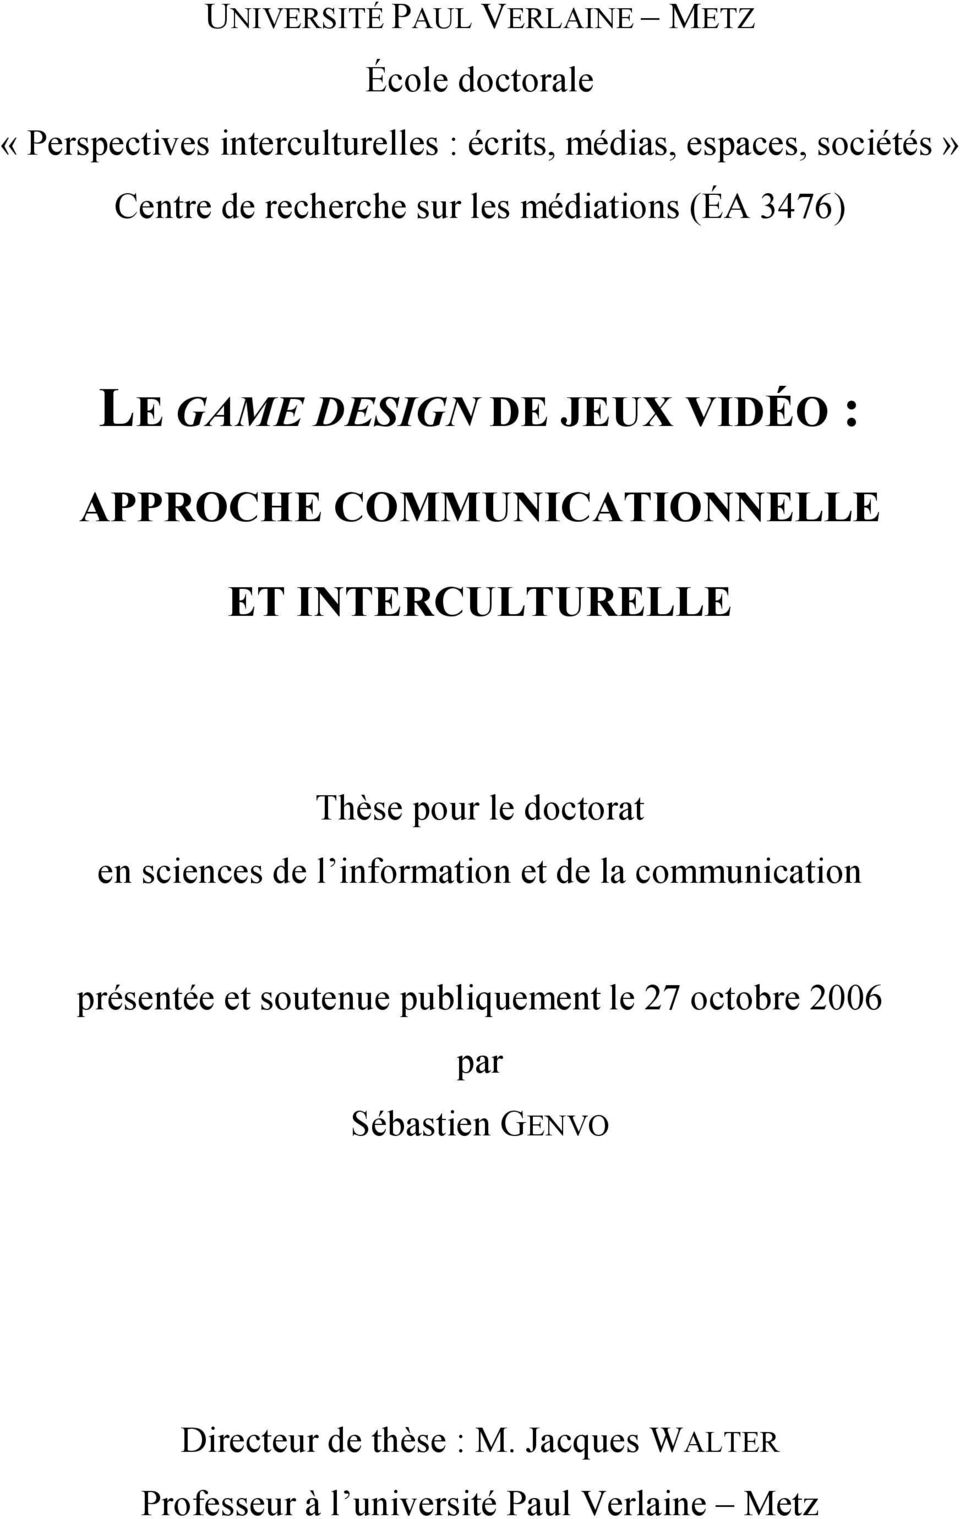 COMMUNICATIONNELLE ET INTERCULTURELLE Thè po doo d omo d ommo